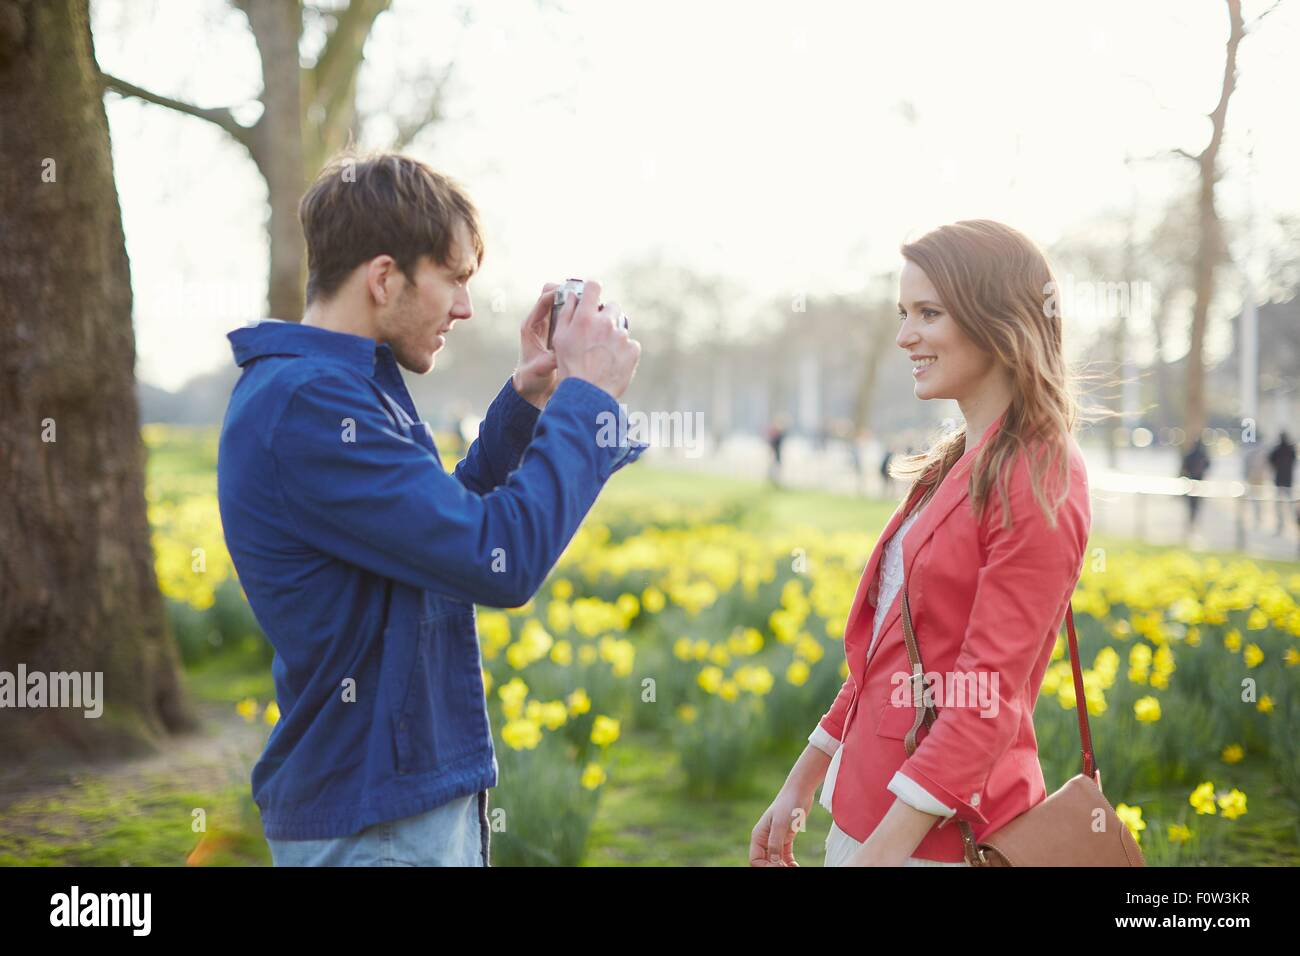 Mid adult man photographing girlfriend in park, London, UK - Stock Image